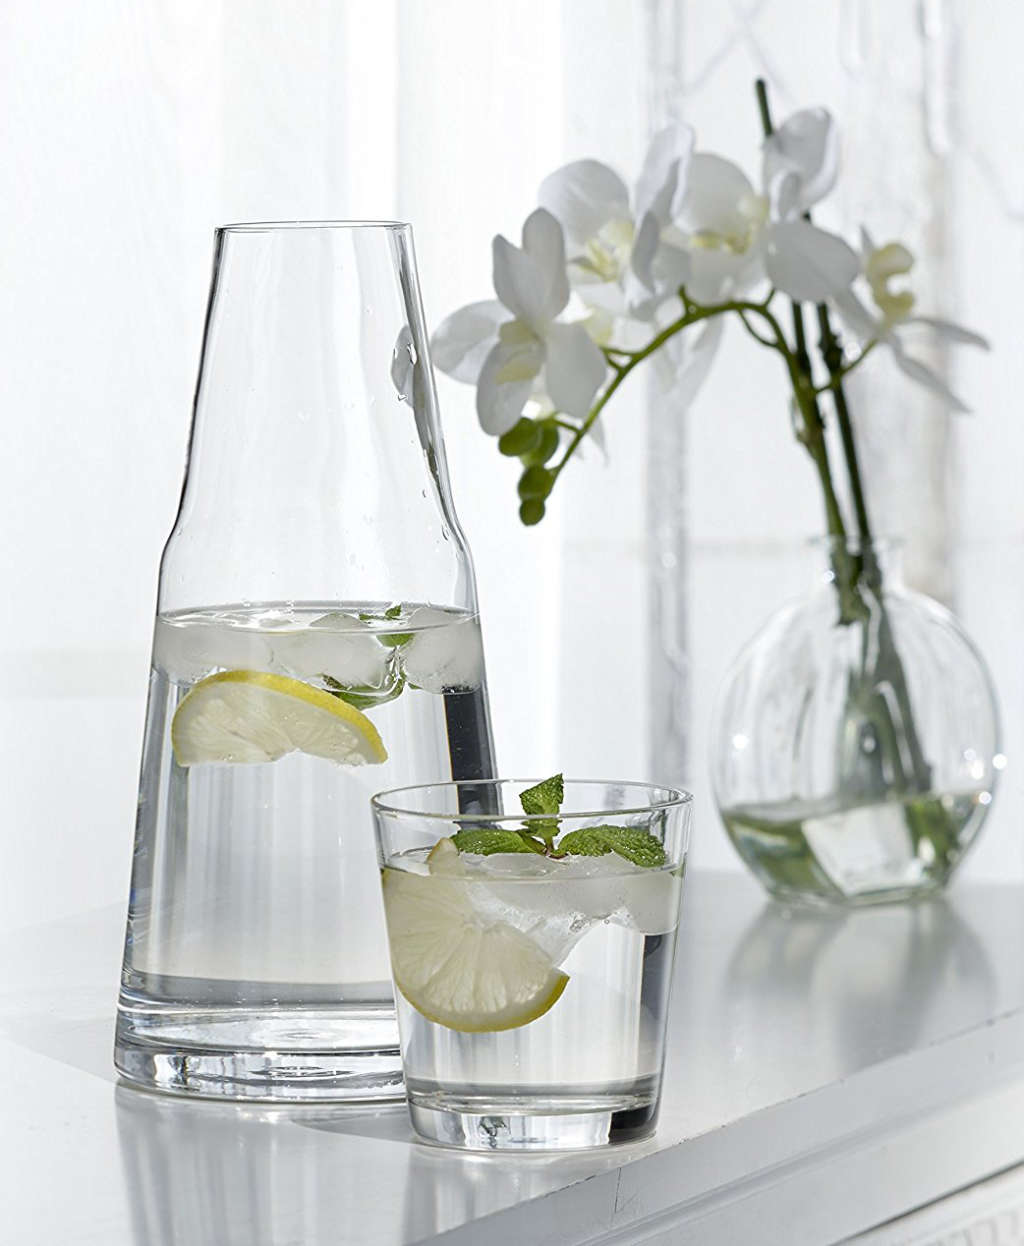 Best Bedside Water Carafes 2015 | Maxwell's Daily Find